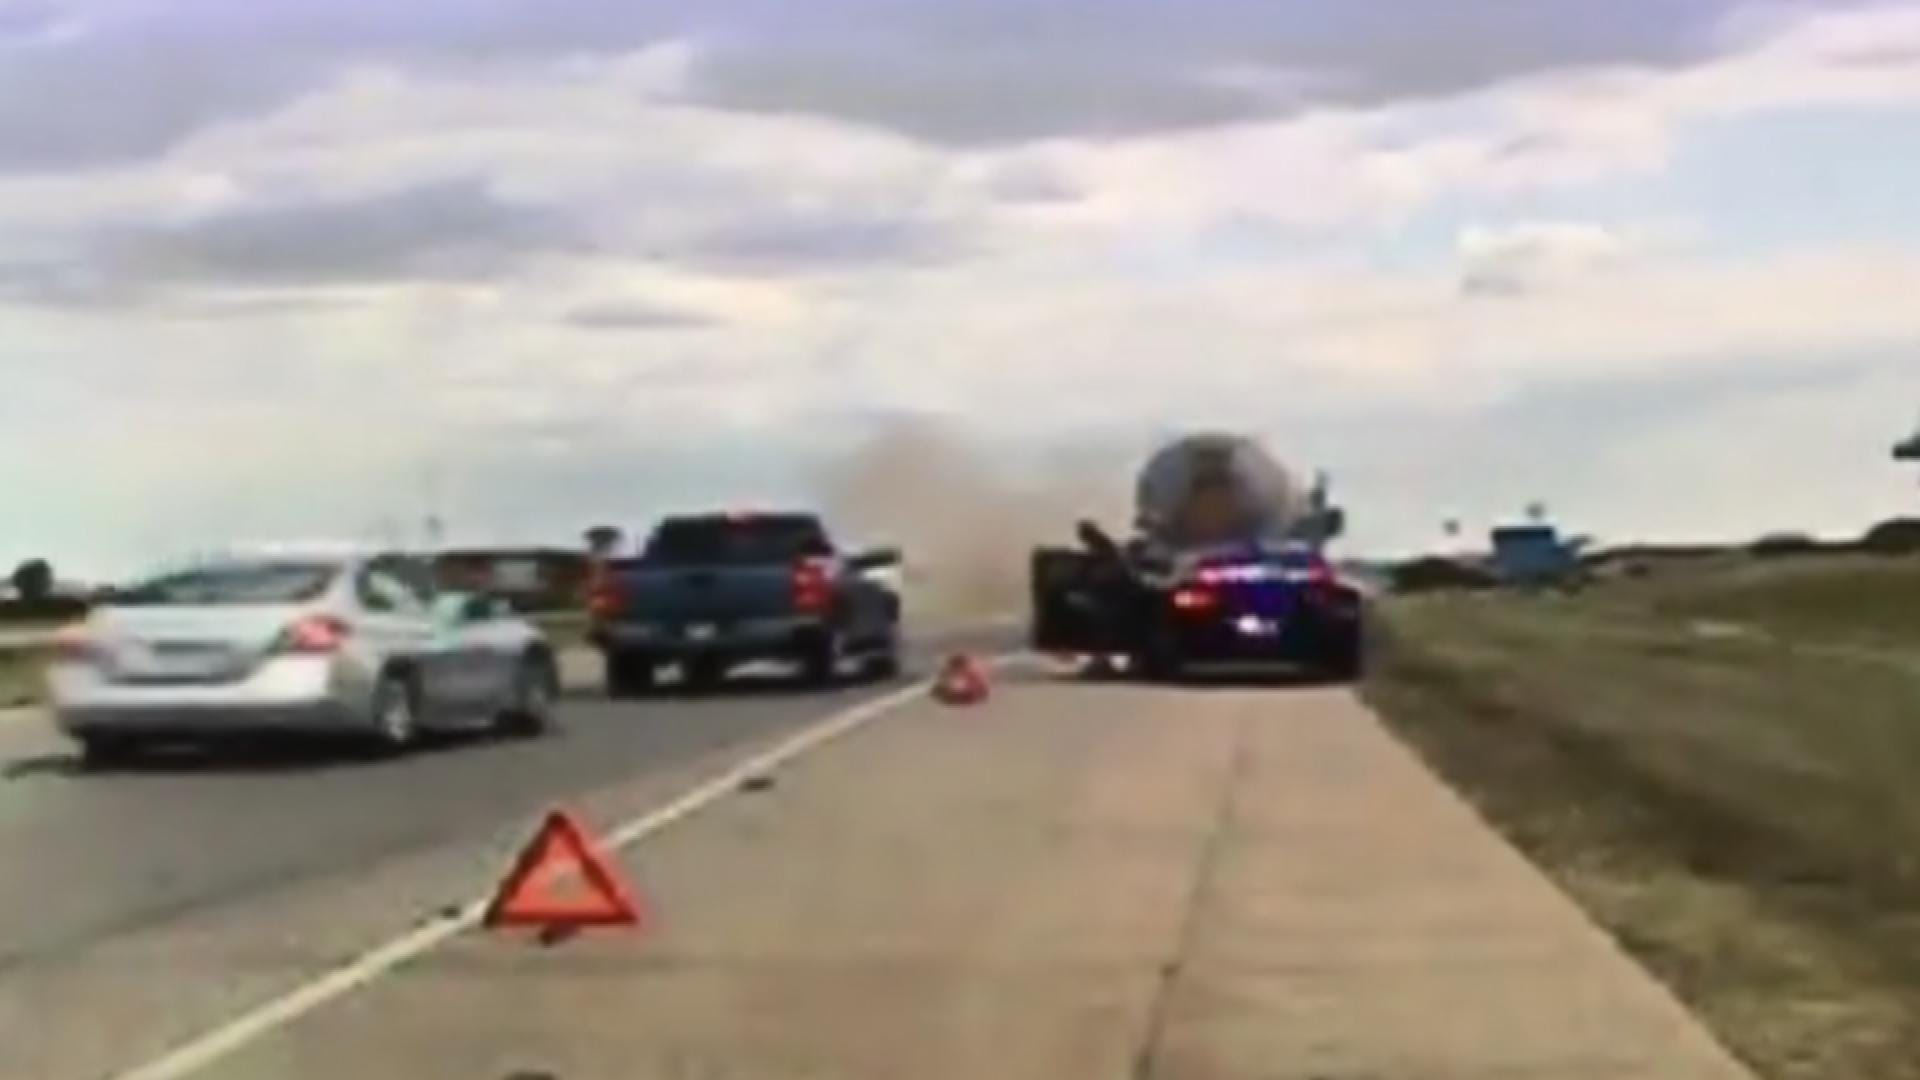 OHP Urges Safety, Awareness After Close Call On I-35 In Ardmore